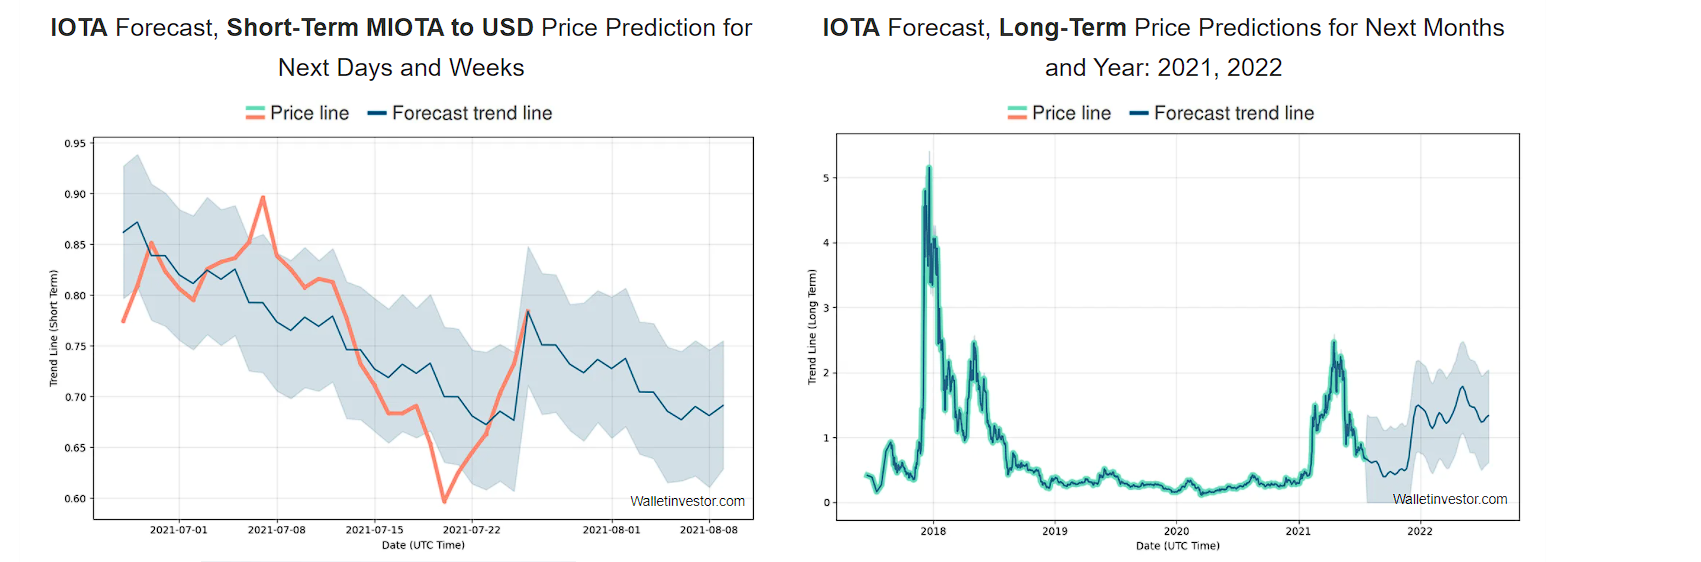 Long-term and short-term price prognosis by Wallet Investor